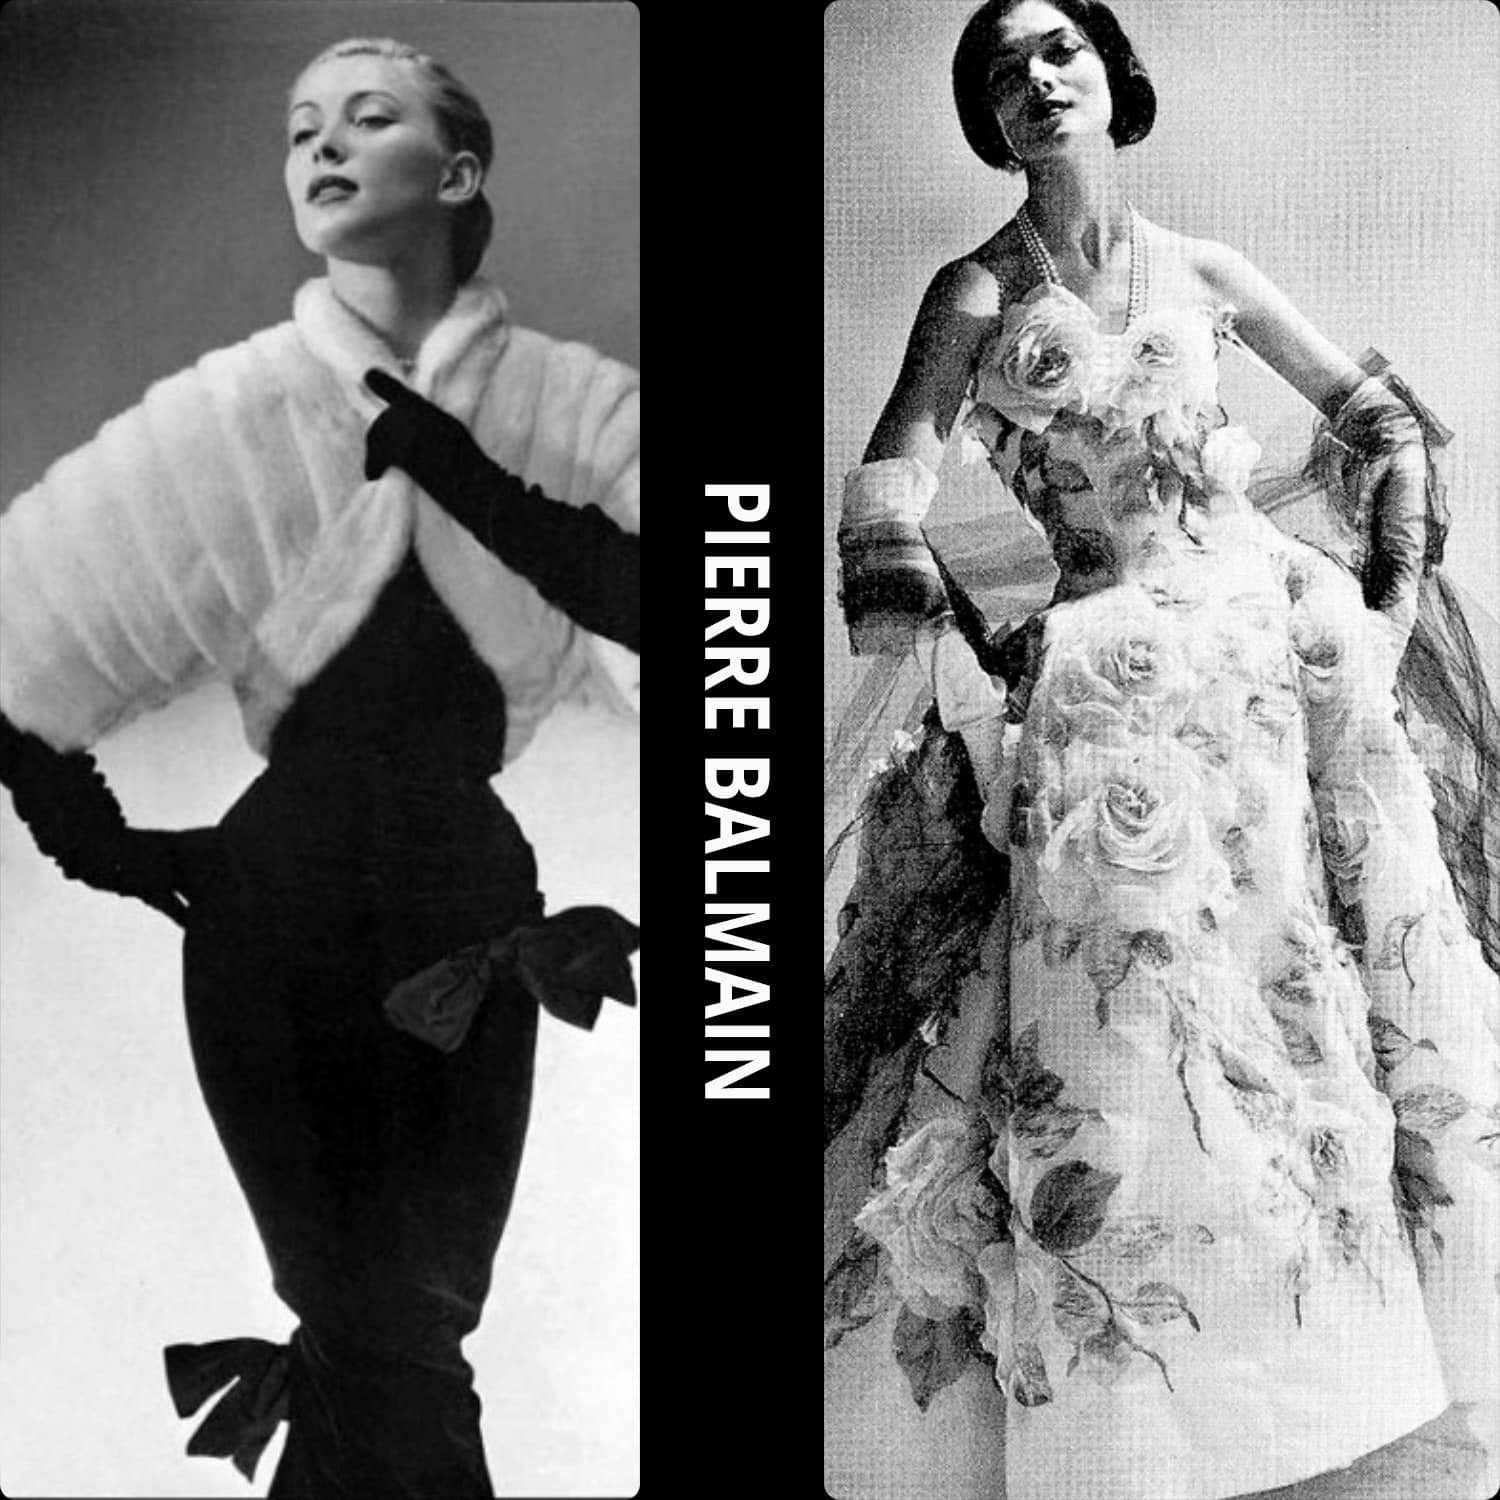 Pierre Balmain most known pieces